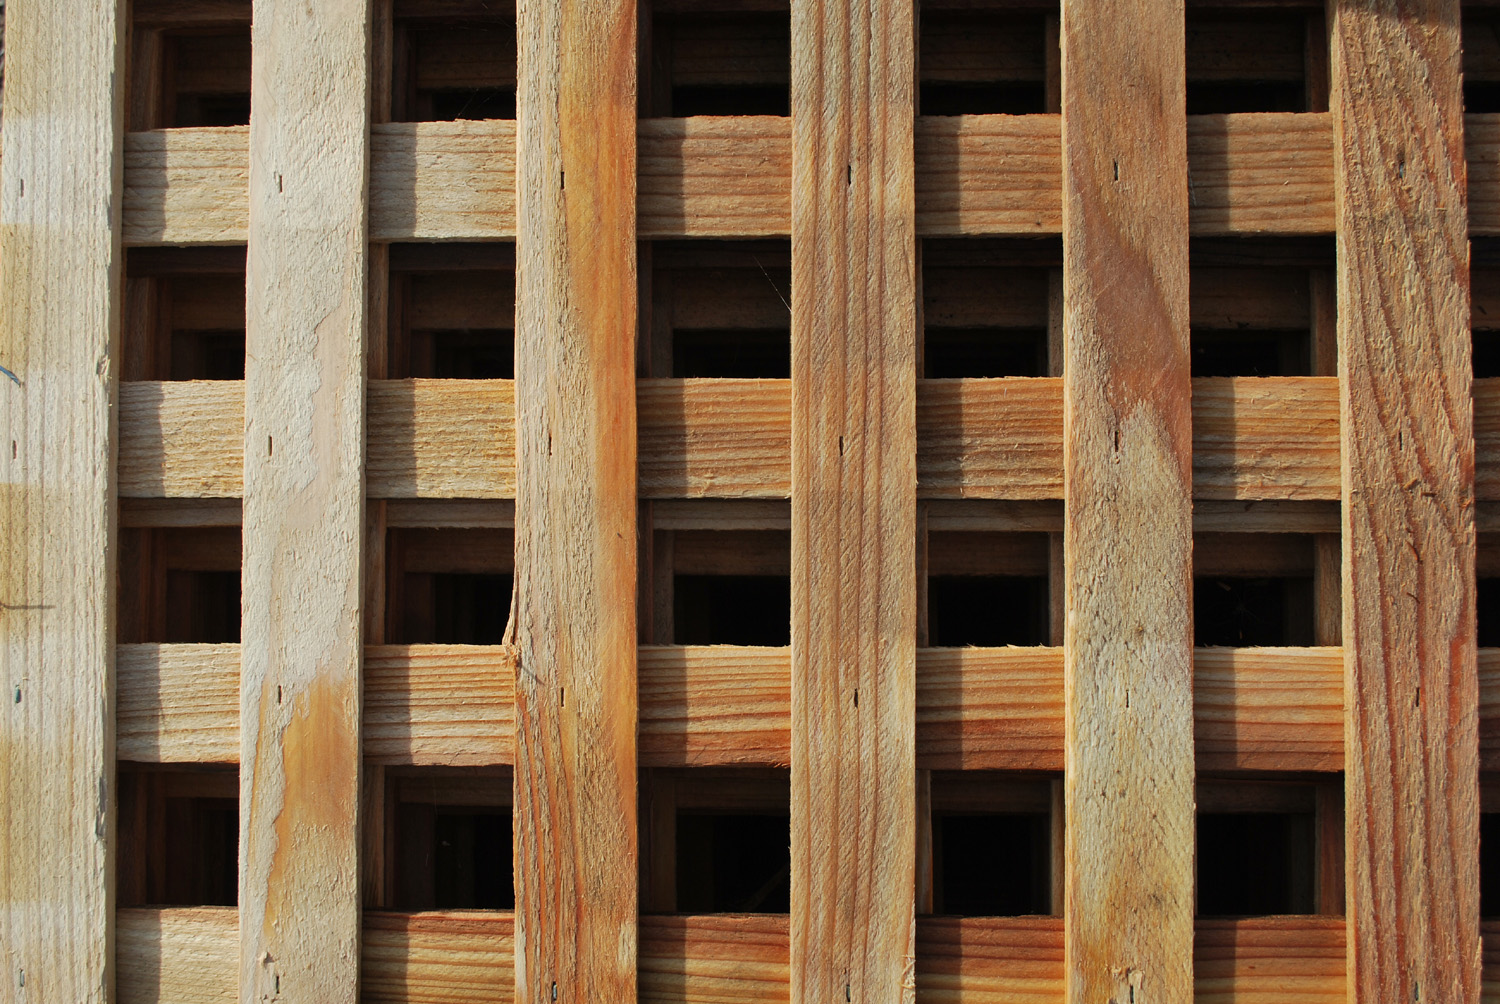 redwood lattice